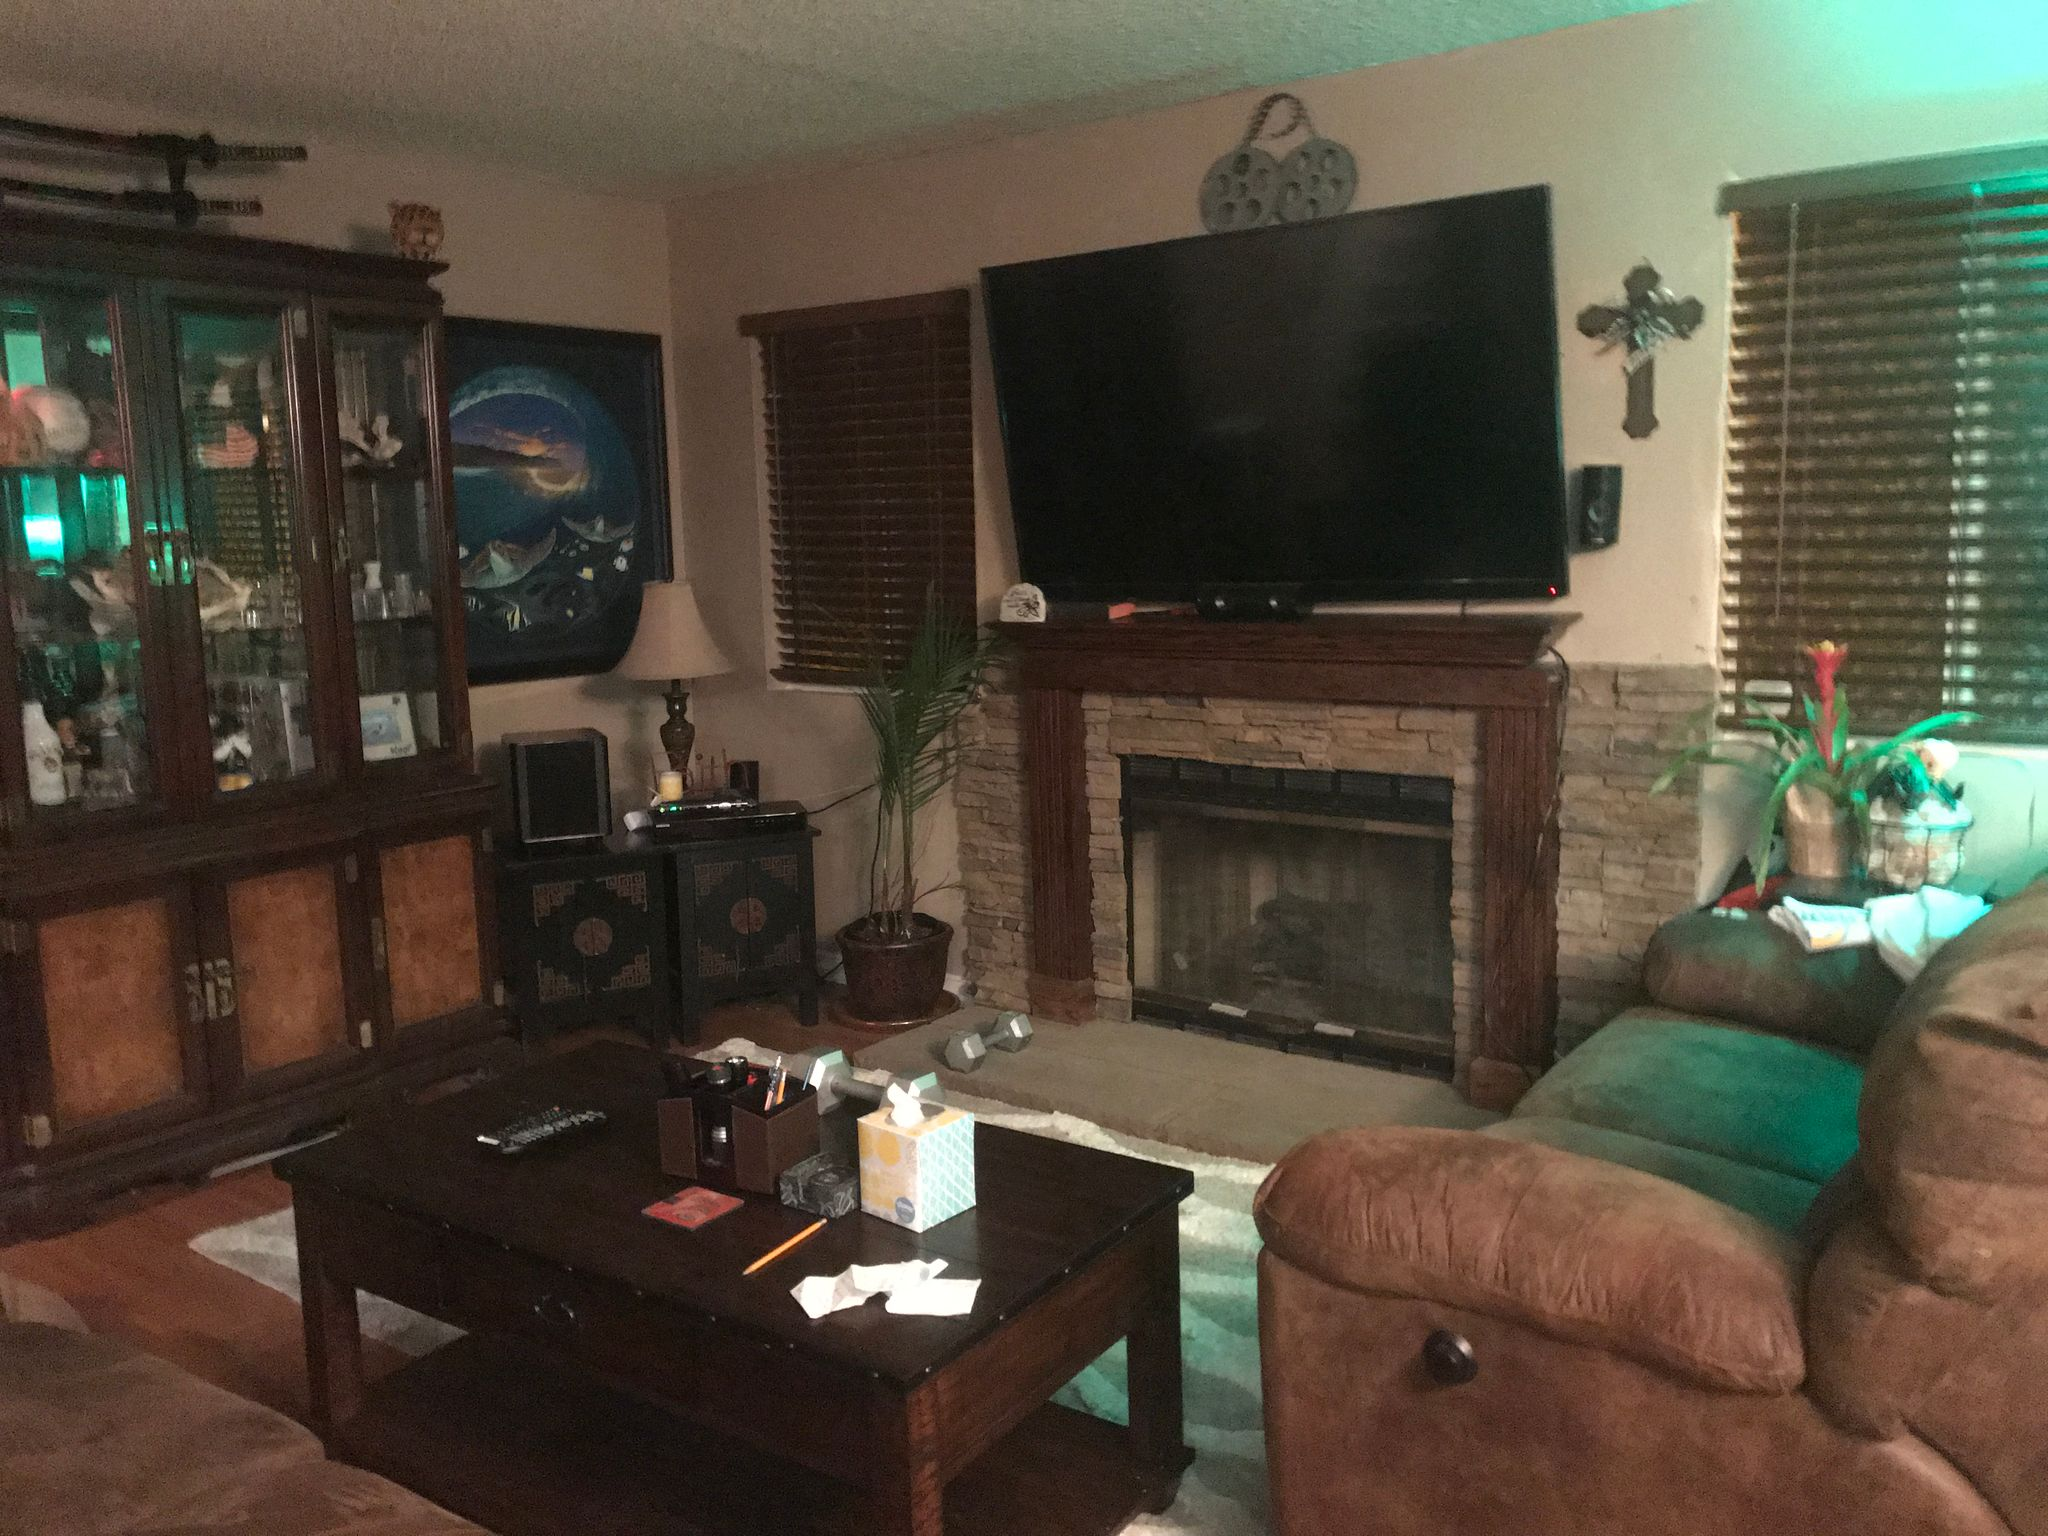 7411 Mission Trails Dr #128, Santee, CA 92071 - Estimate and Home ...